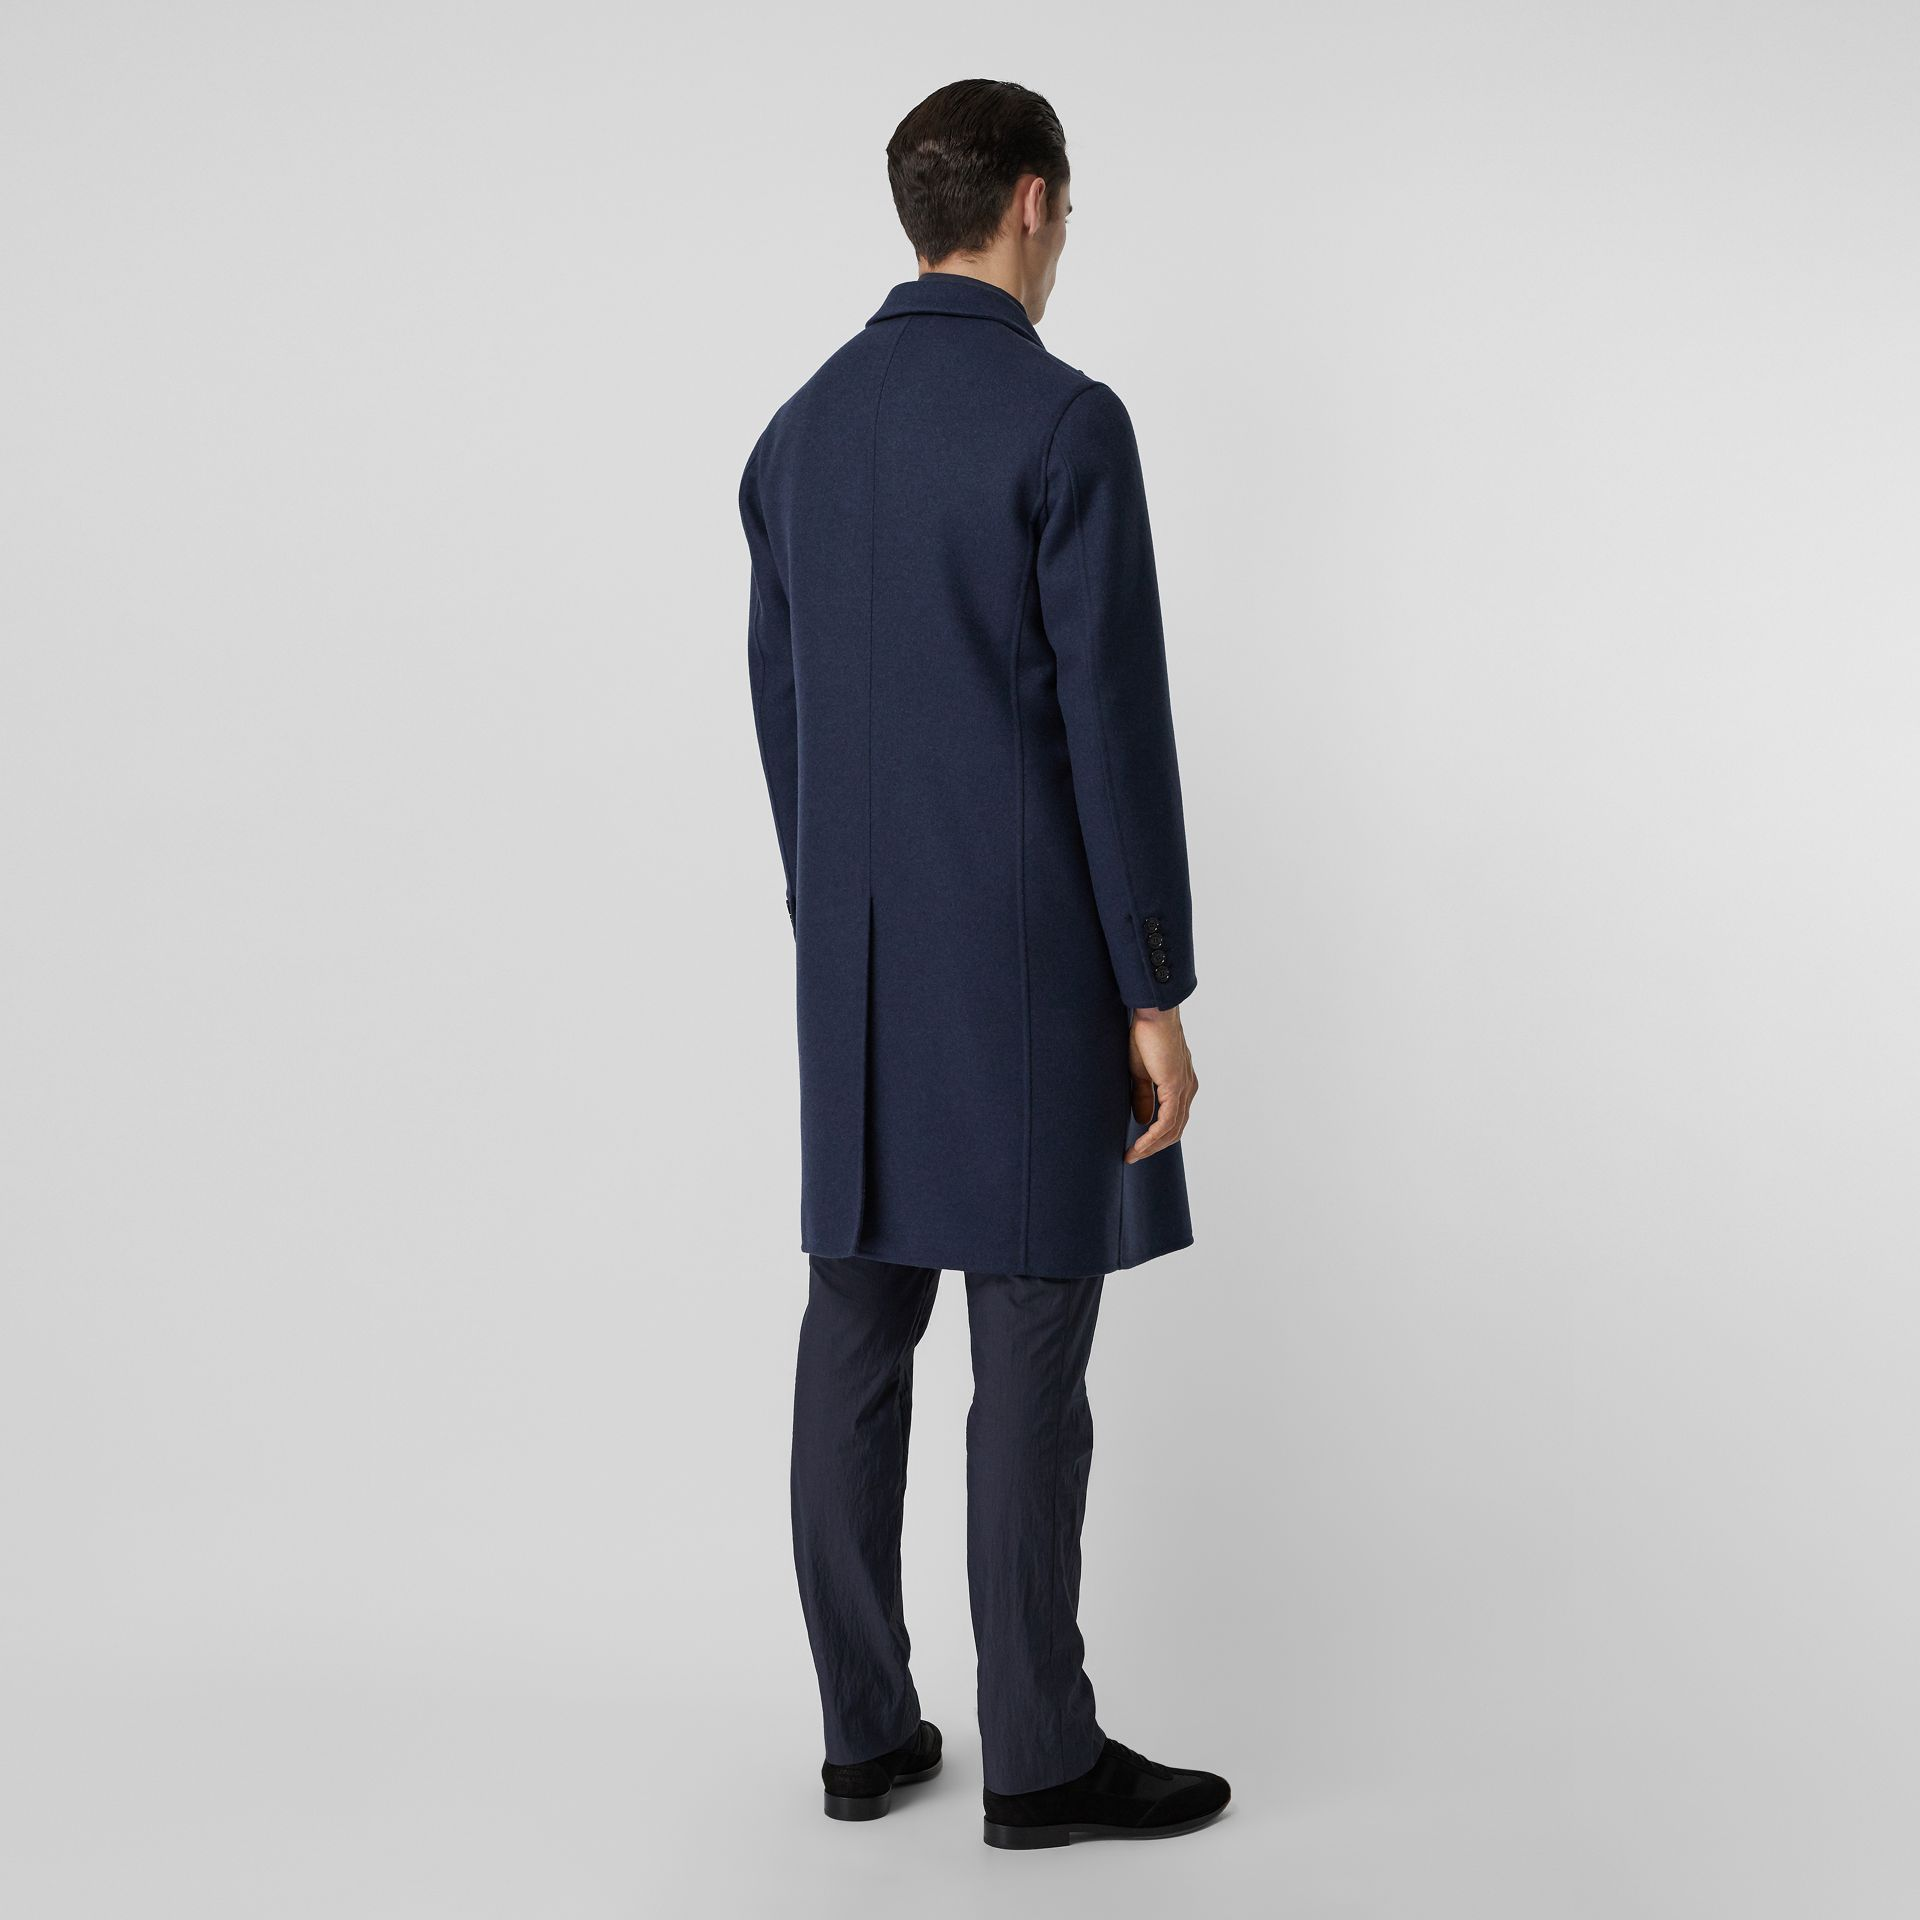 Double-faced Wool Cashmere Tailored Coat in Steel Blue Melange - Men | Burberry Hong Kong S.A.R - gallery image 2